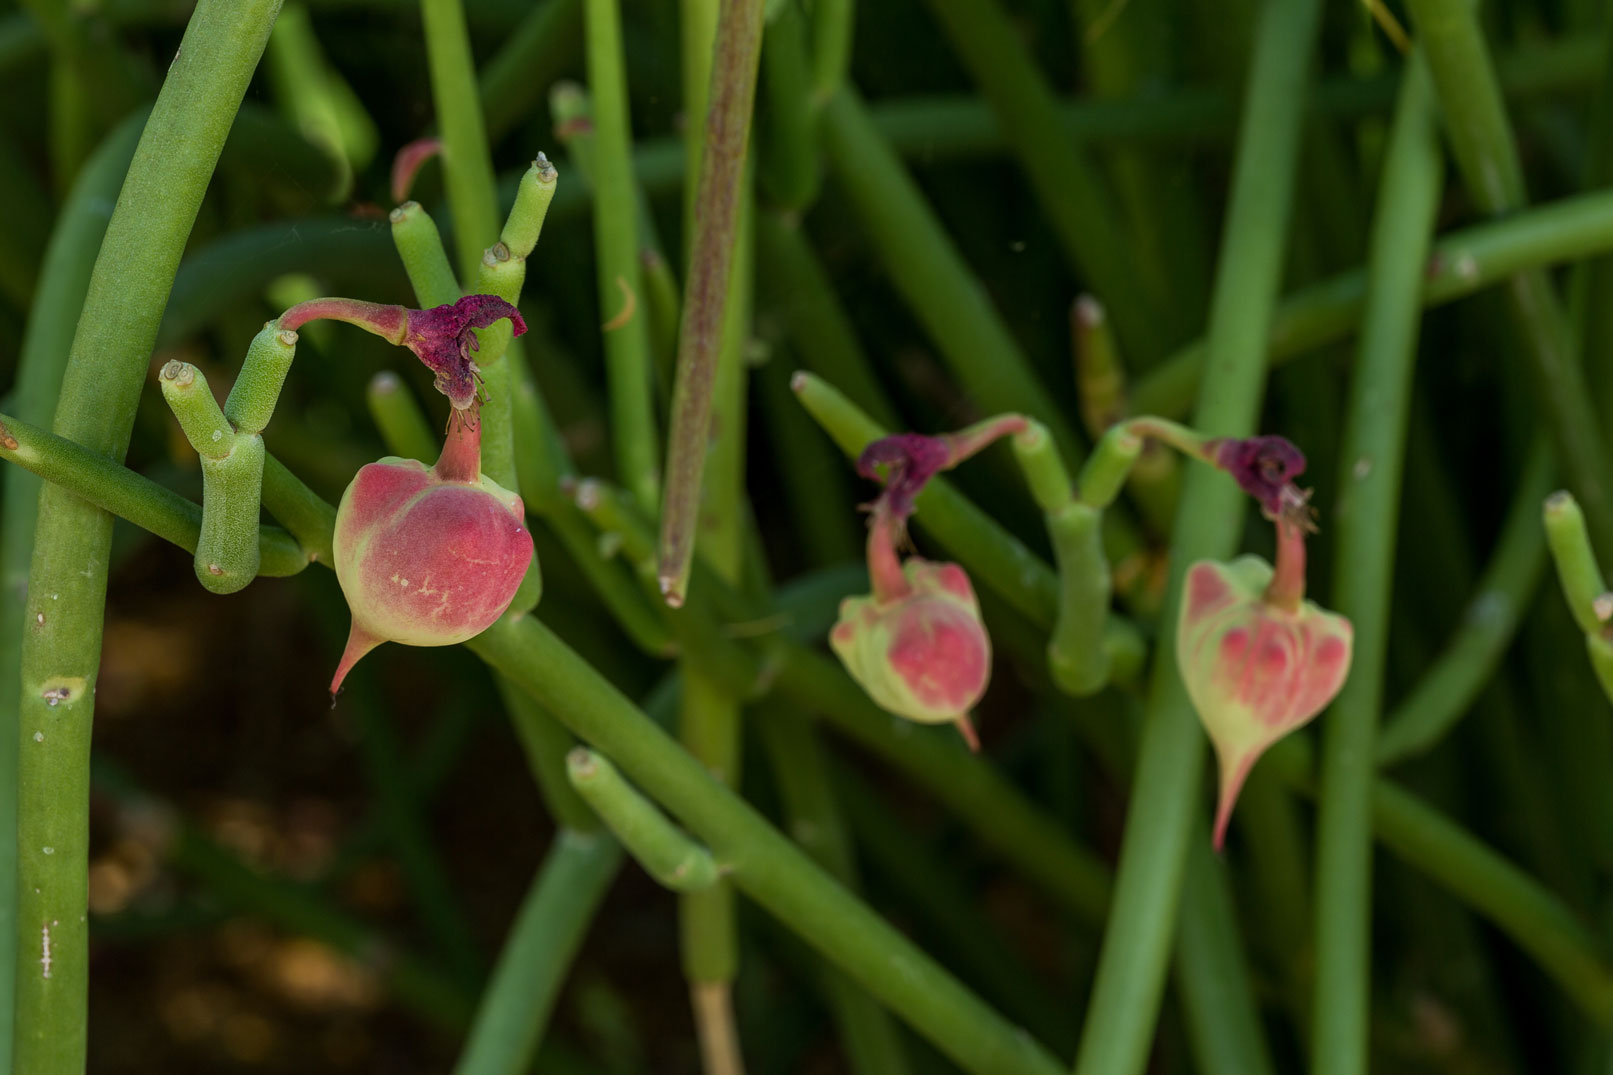 A close-up of Slipper Flower seed pods.